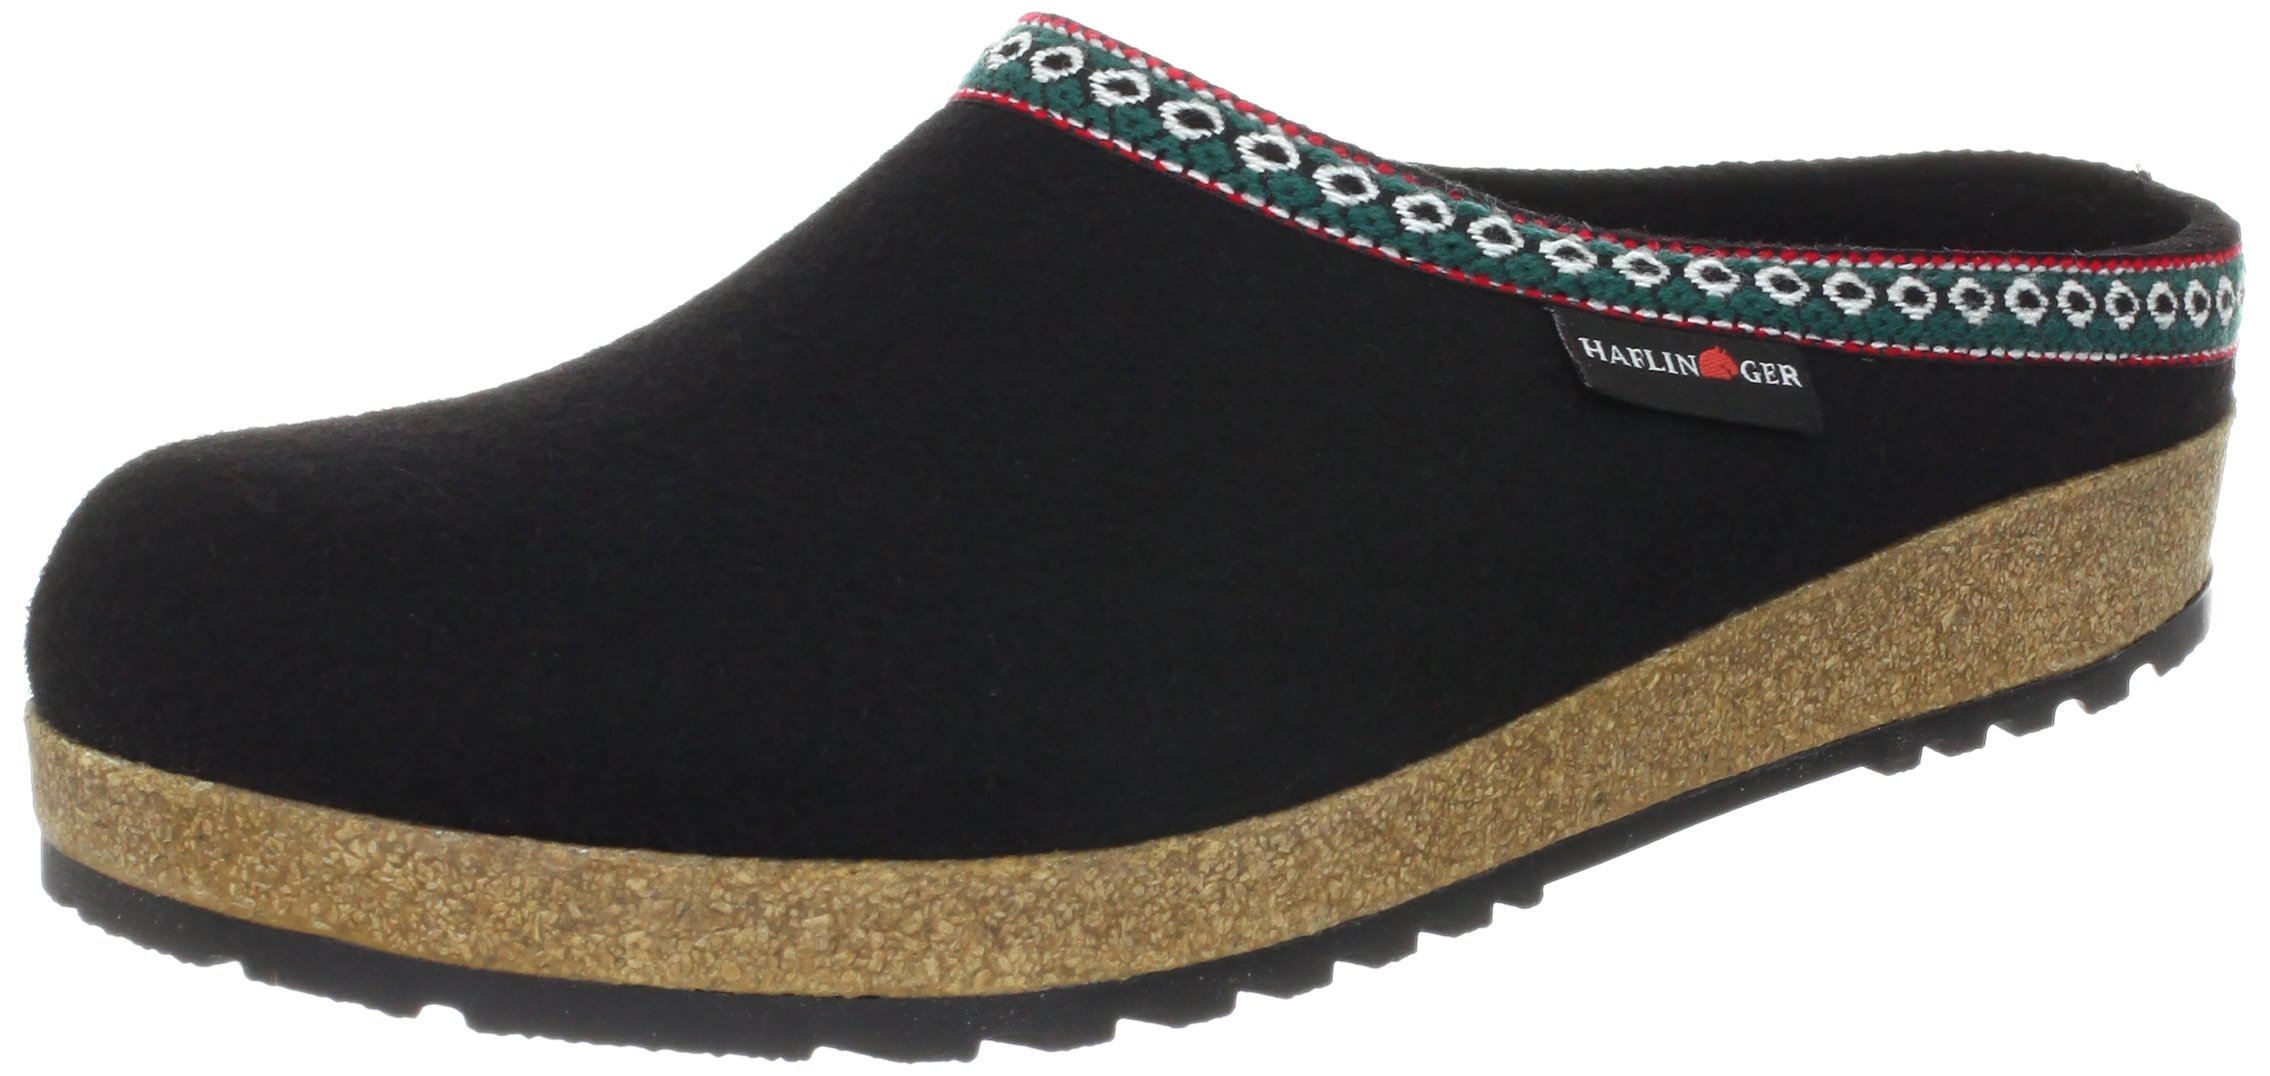 Haflinger Classic Grizzly Clogs,Black,36 M EU by Haflinger